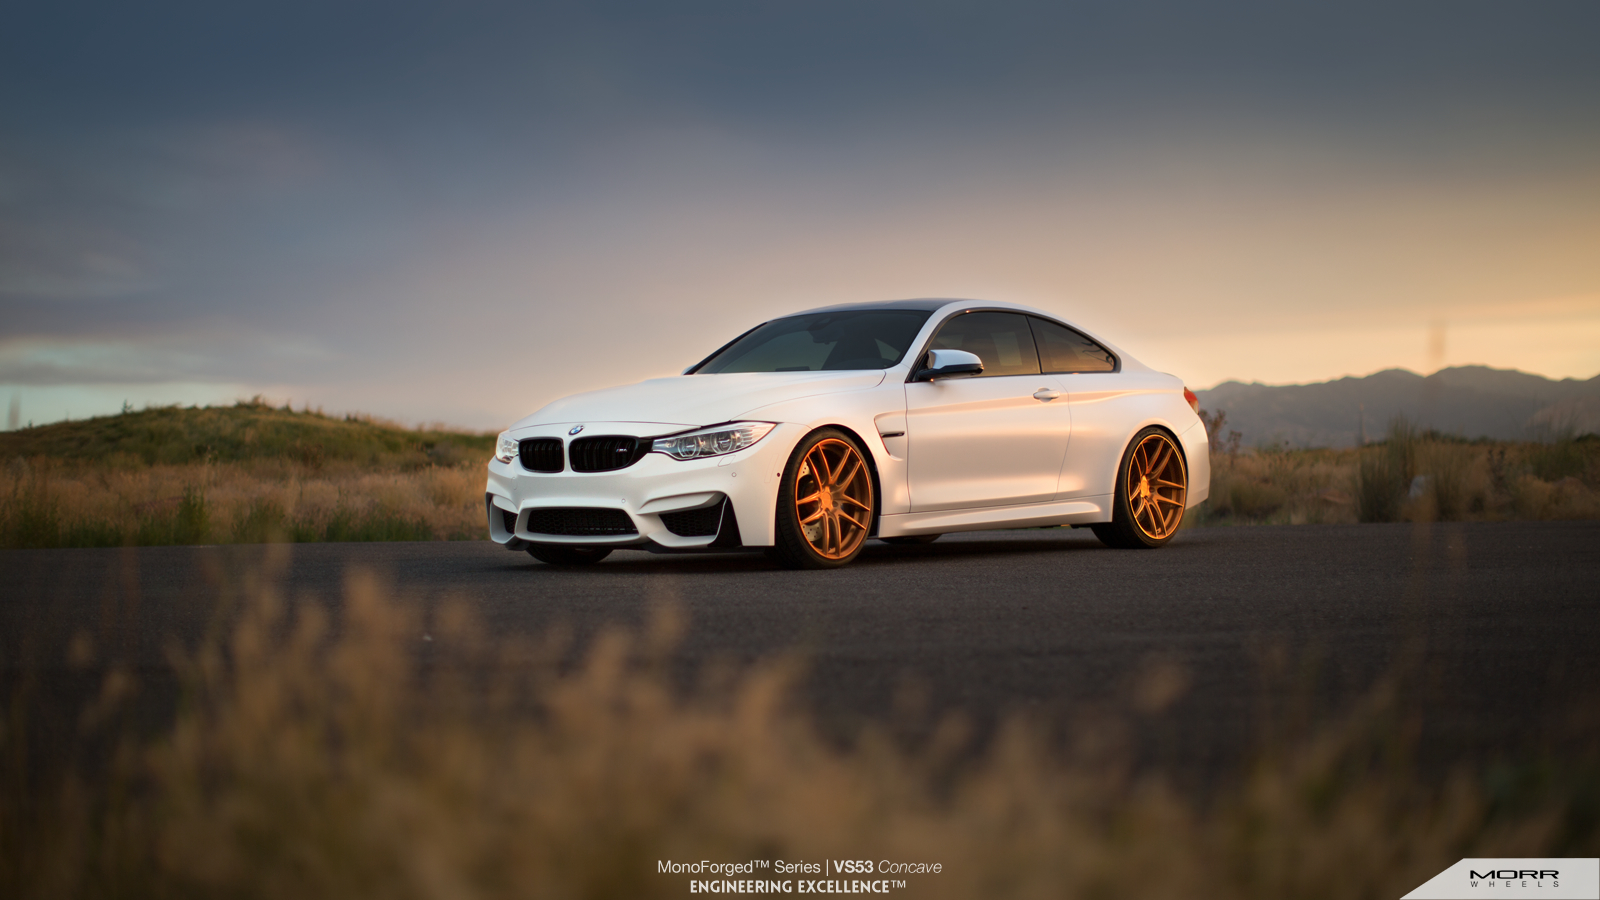 Police Car Wallpaper Hd Bmw M4 Looking Sharp On Morr Wheels With M Performance